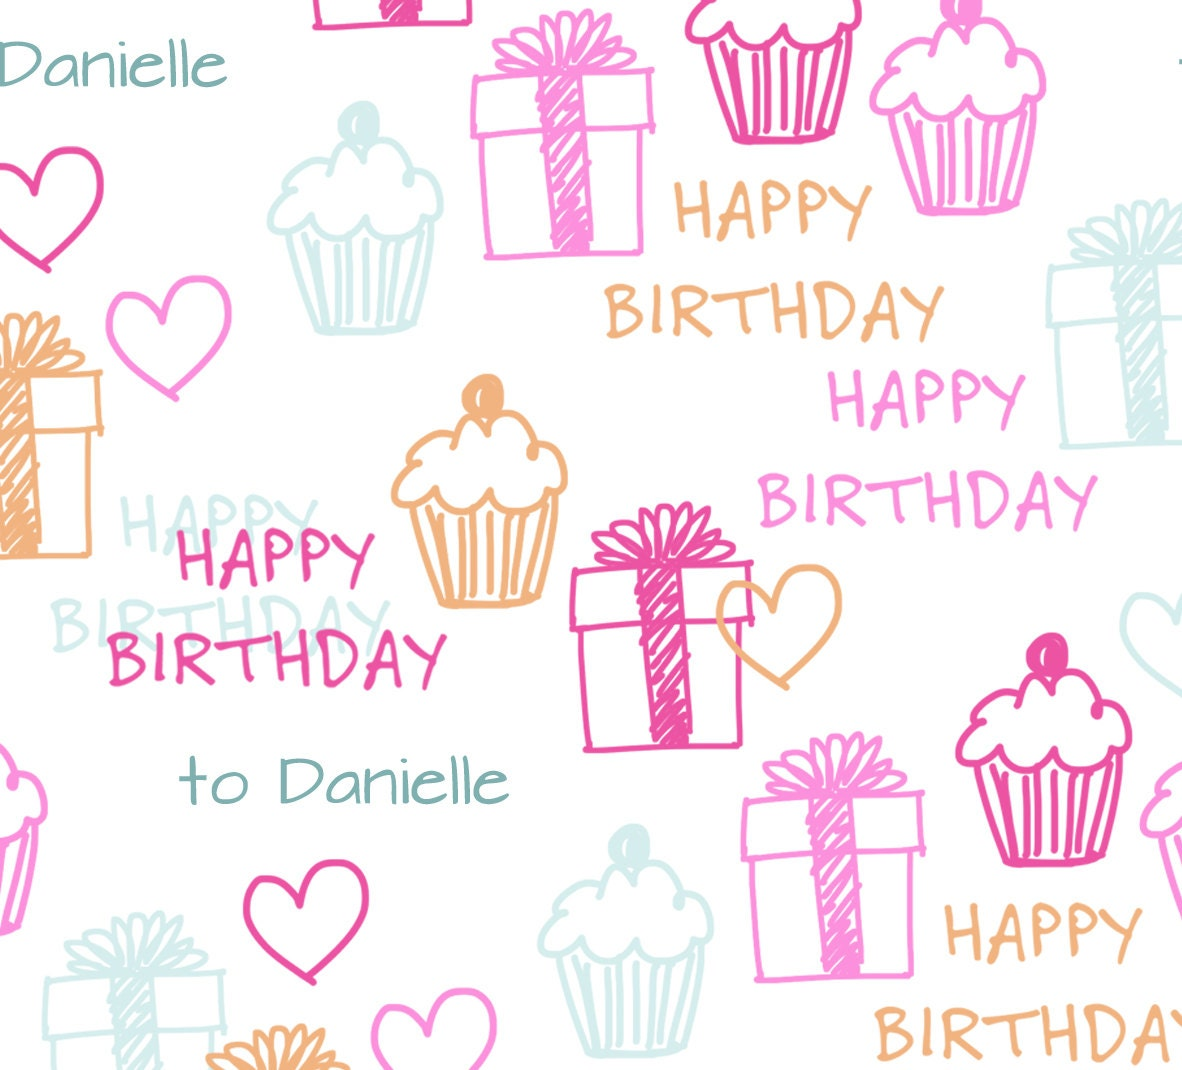 Dynamite image regarding printable birthday wrapping paper